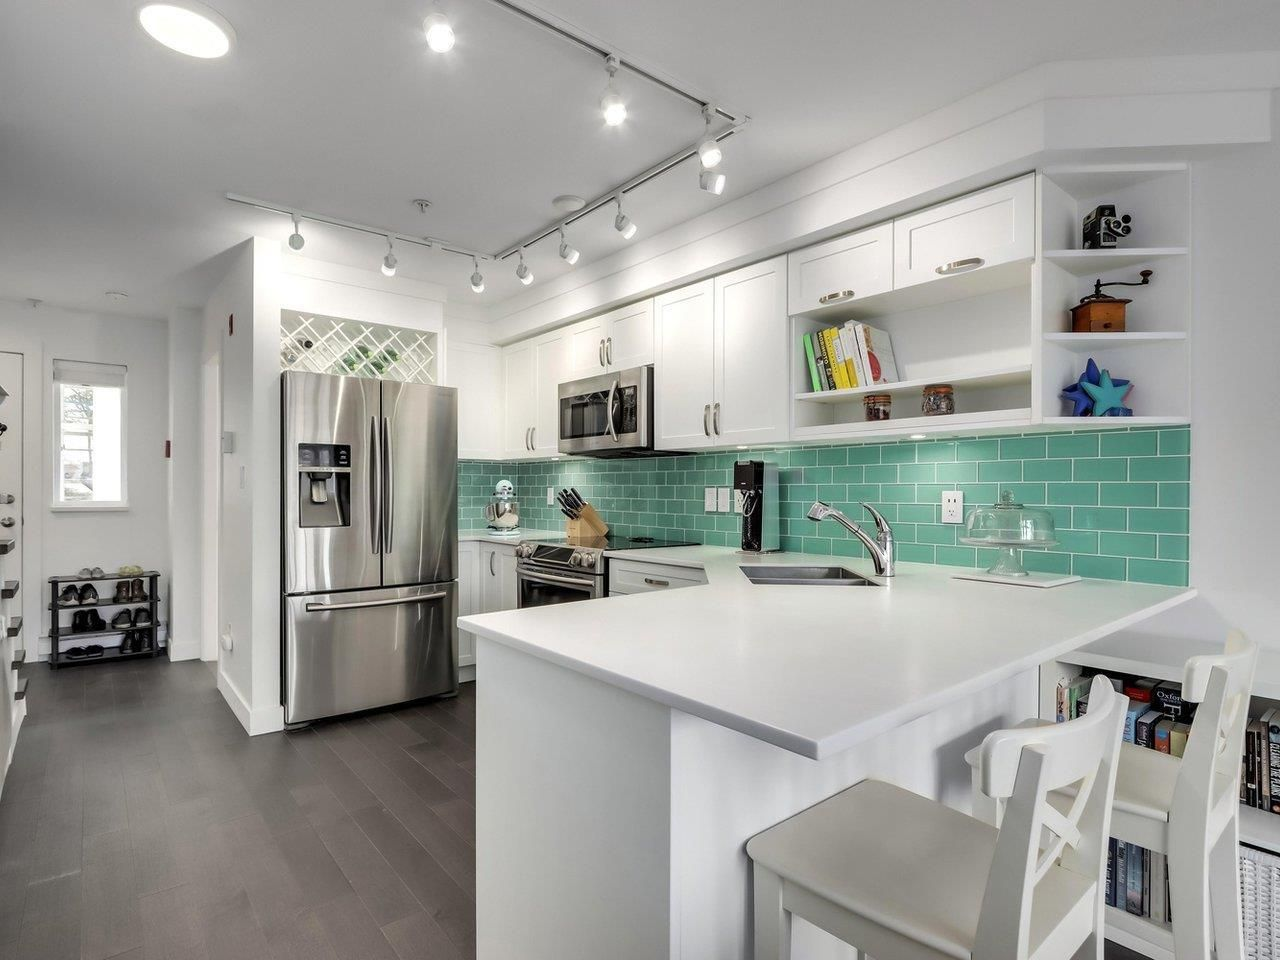 """Main Photo: 210 2545 W BROADWAY Avenue in Vancouver: Kitsilano Townhouse for sale in """"Trafalgar Mews"""" (Vancouver West)  : MLS®# R2590394"""